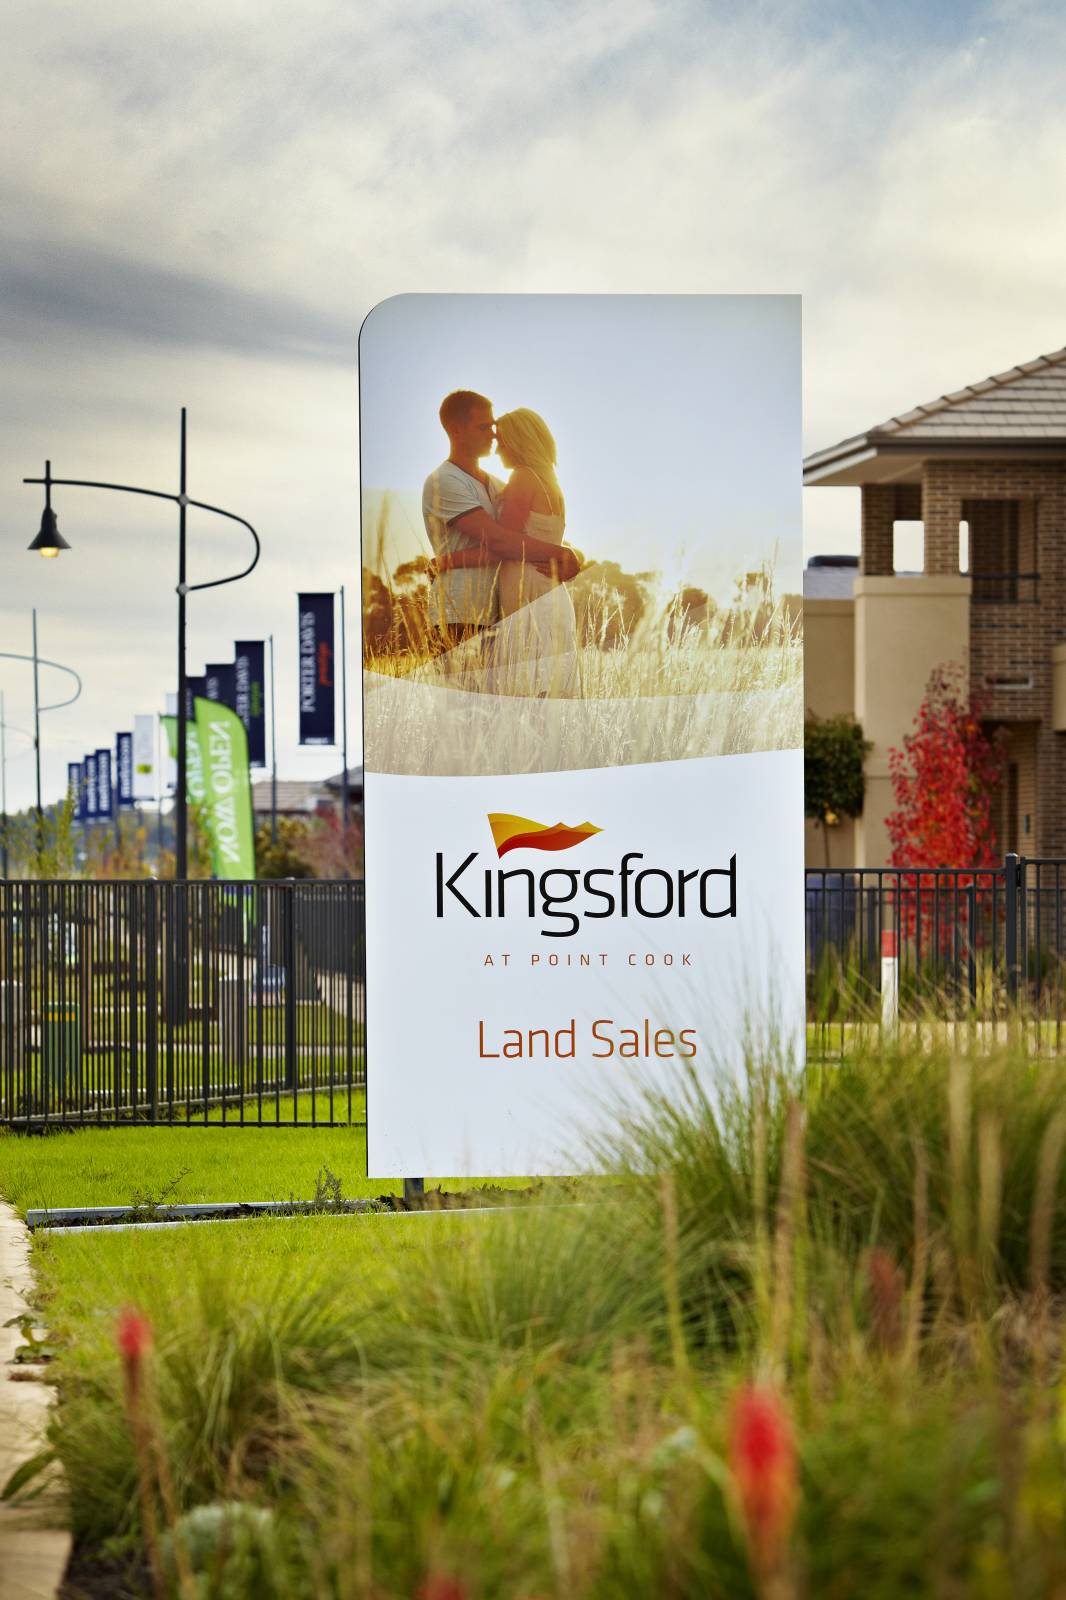 kingsford case study This case-study illustrates how levels of risk can be reduced to a more acceptable level it is perhaps of particular interest to managers faced with activities on their land that.